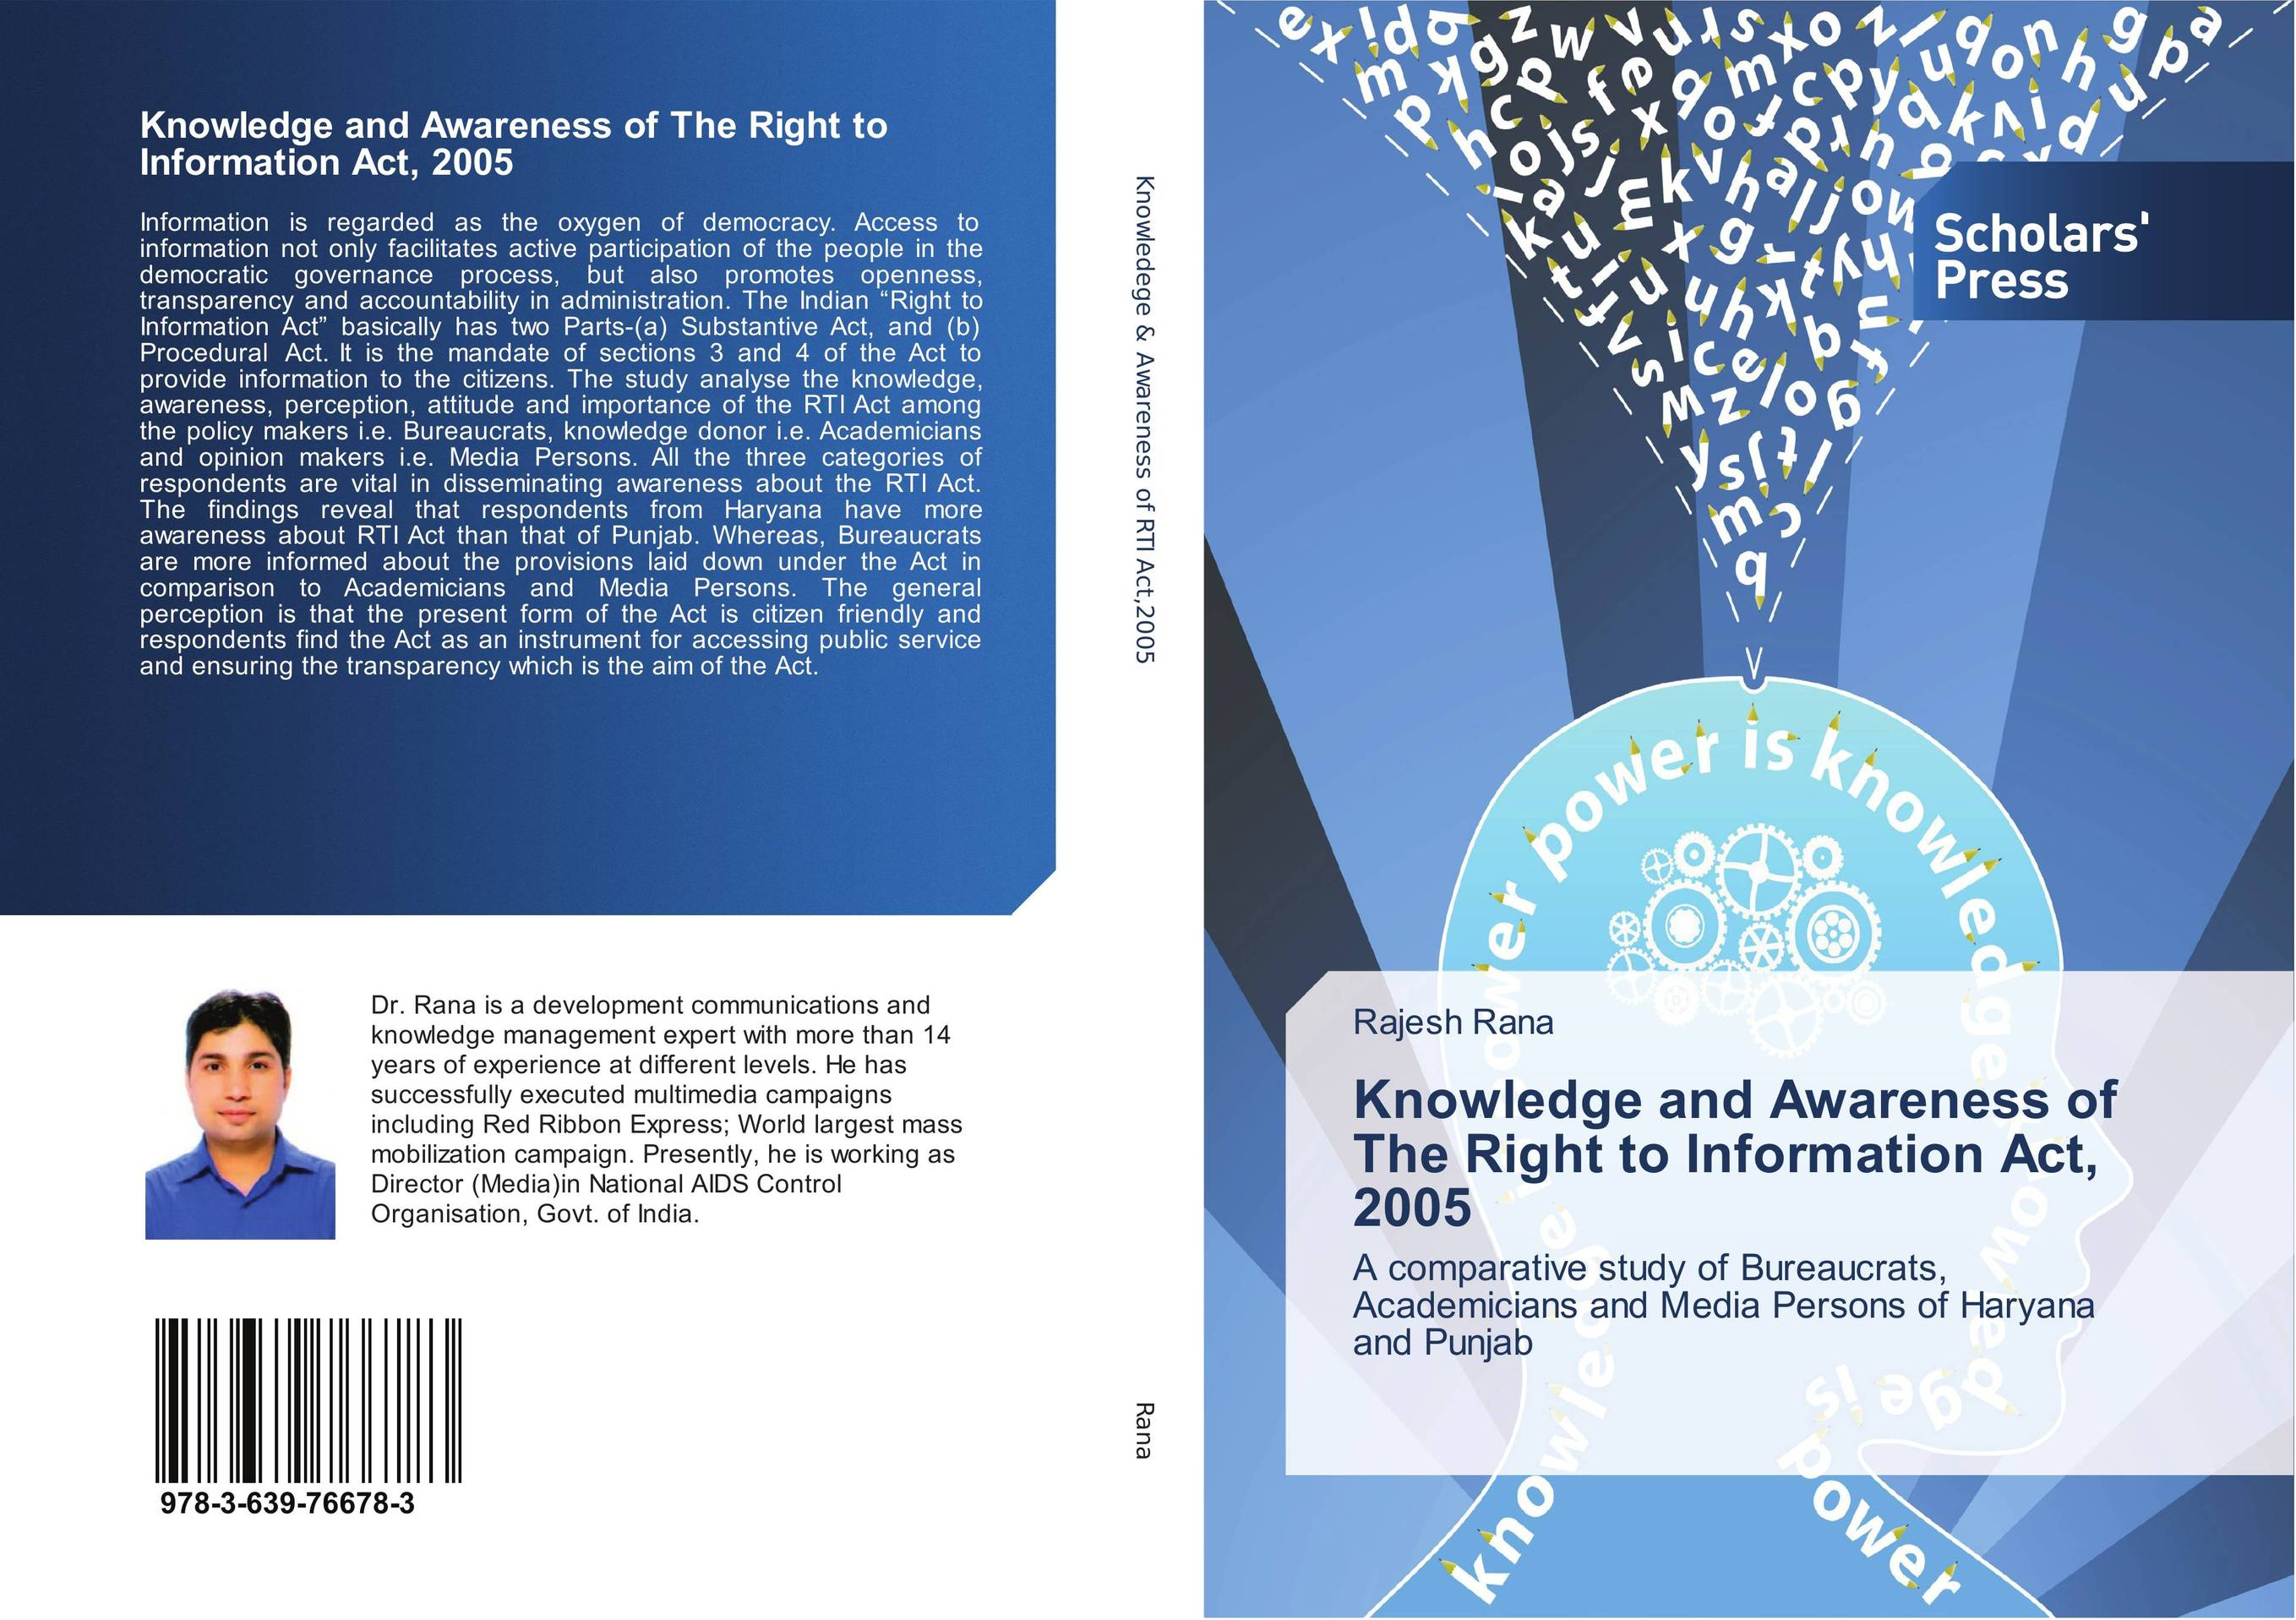 Knowledge and Awareness of The Right to Information Act, 2005 bureaucrats